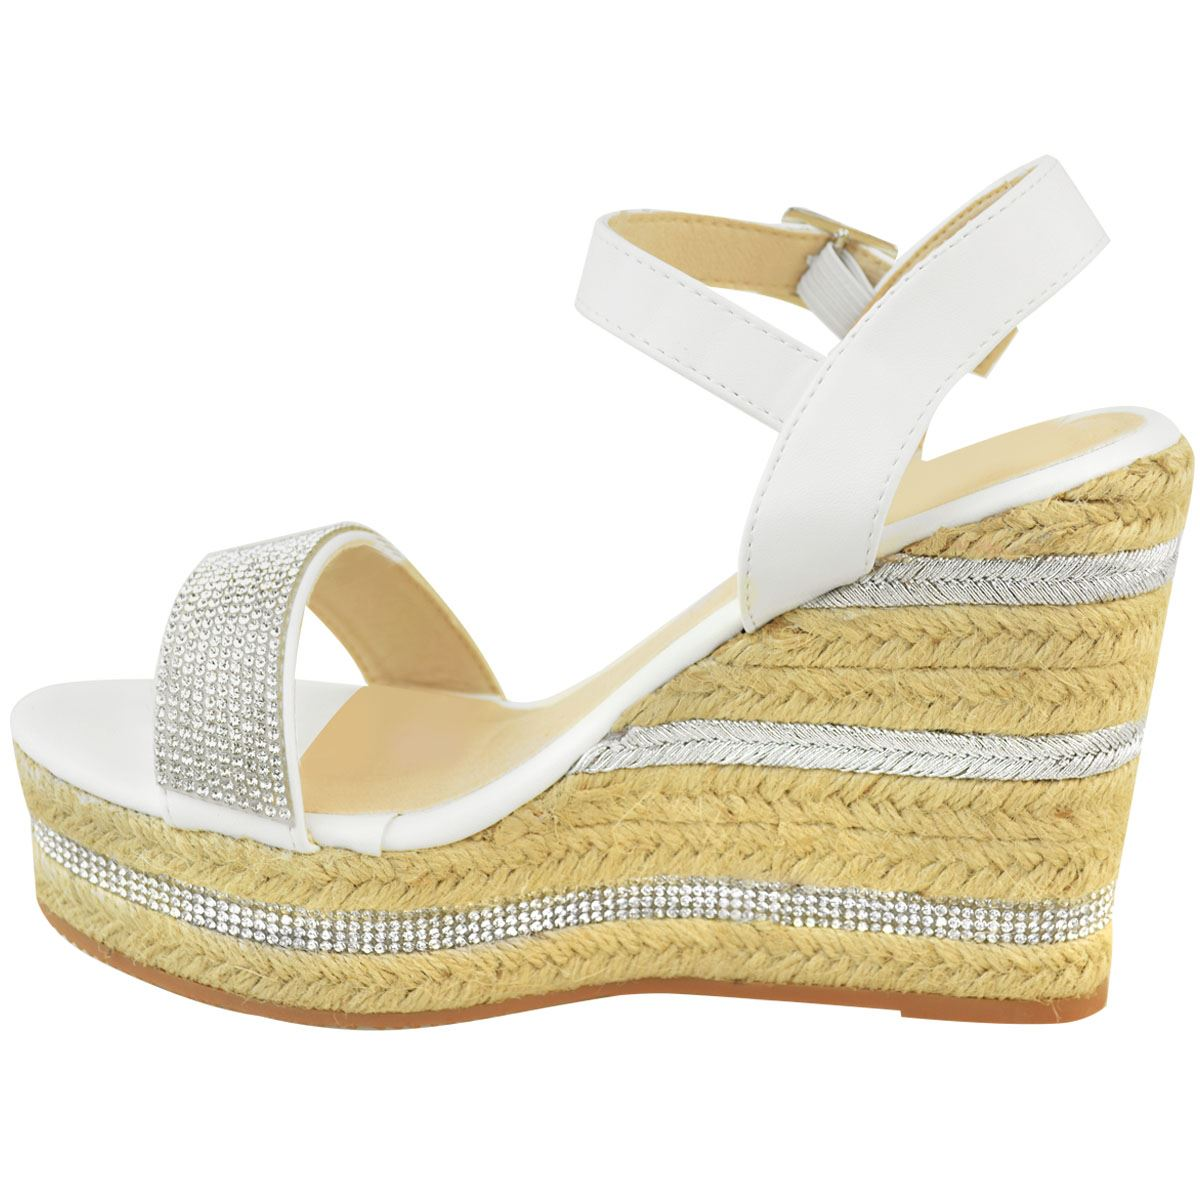 Womens-Ladies-Wedged-High-Heel-Sandals-Raffia-Diamante-Party-Shoes-Summer-Size thumbnail 15